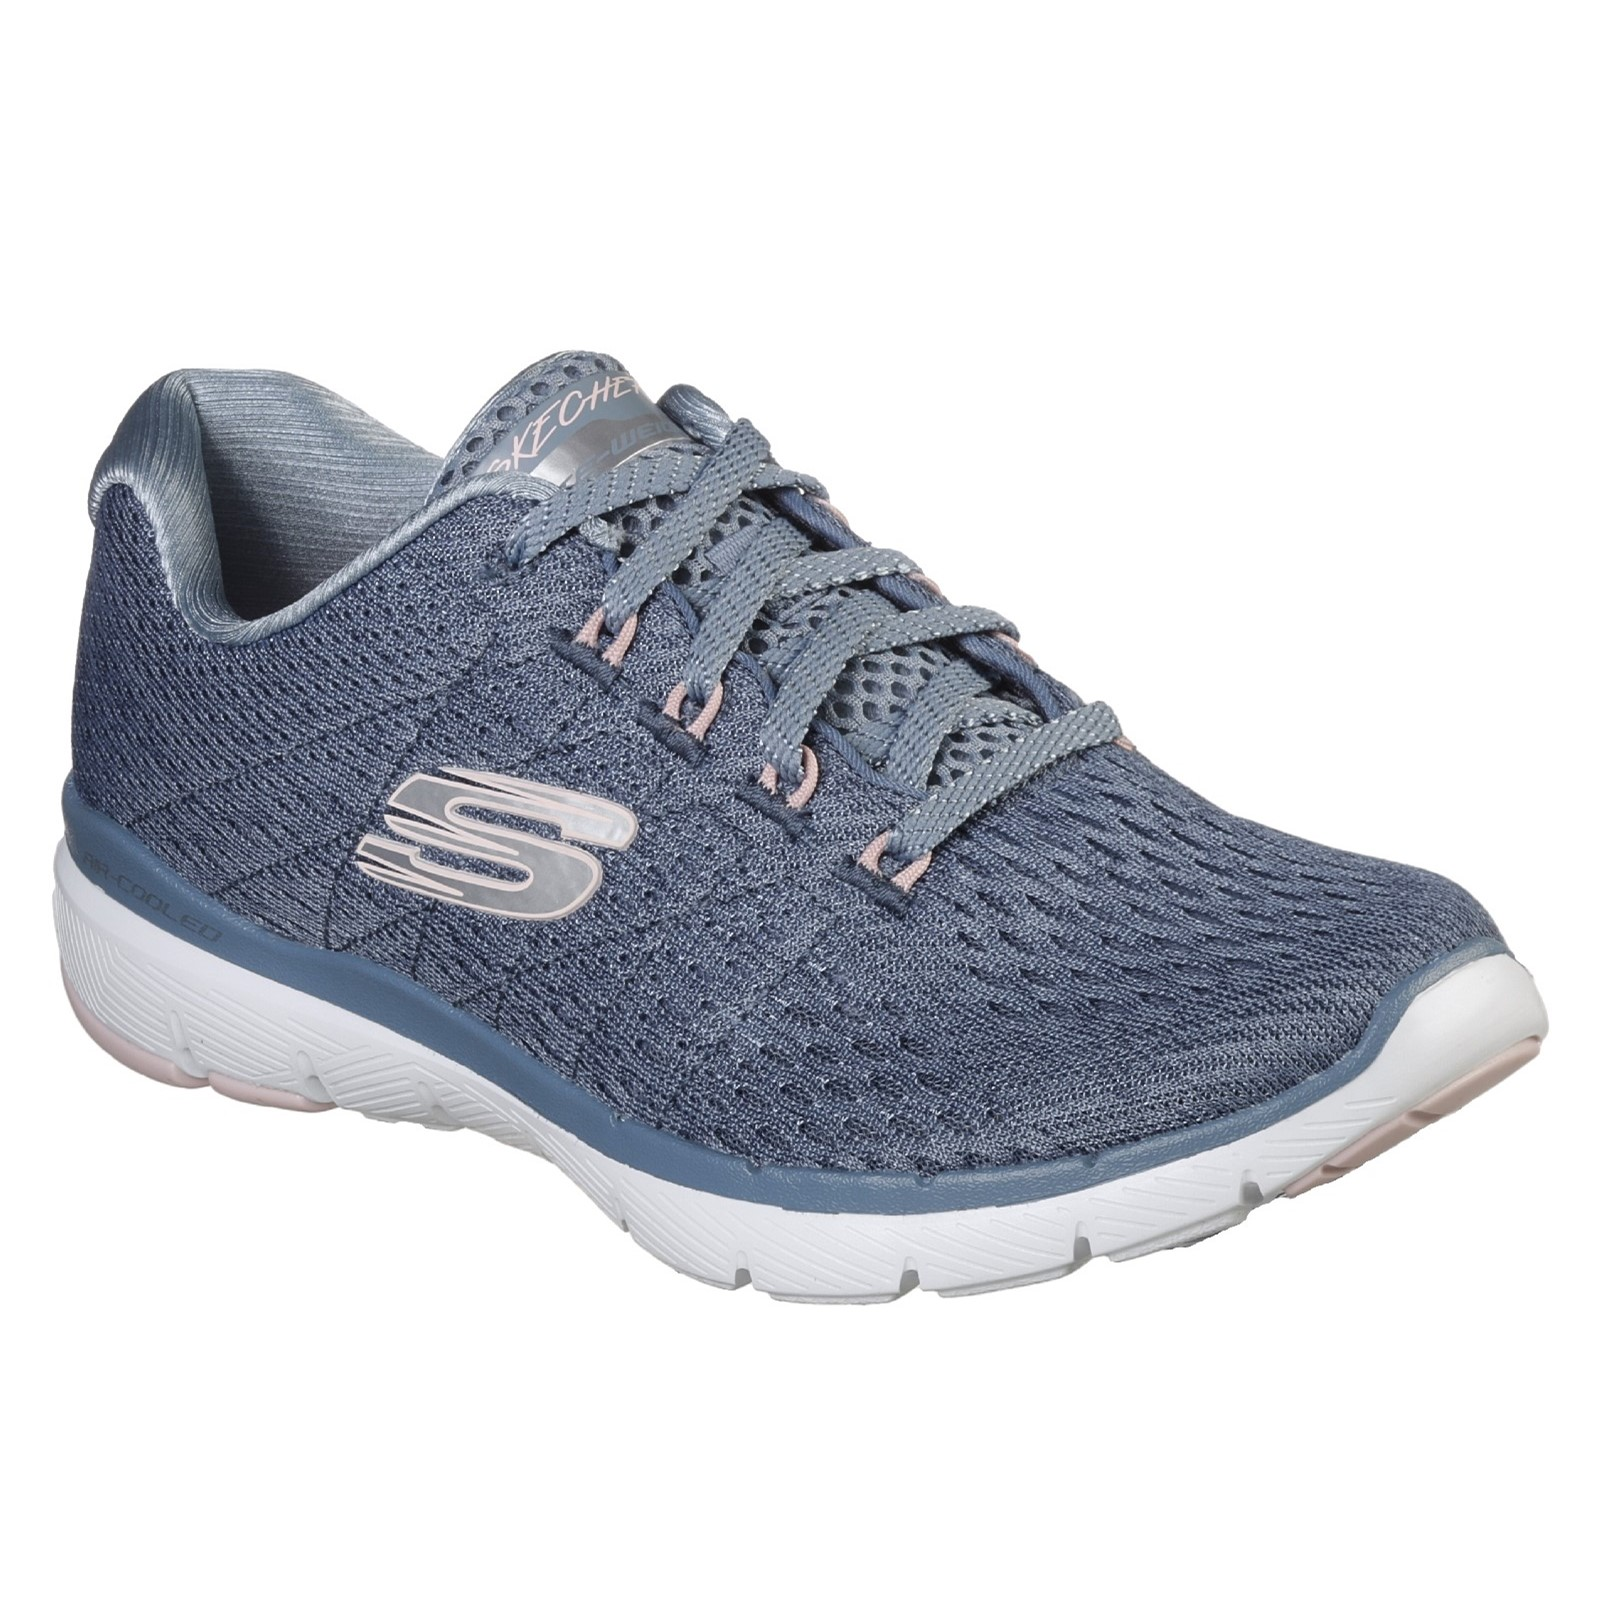 Skechers Womens Flex Appeal 3.0 Satellites shoes